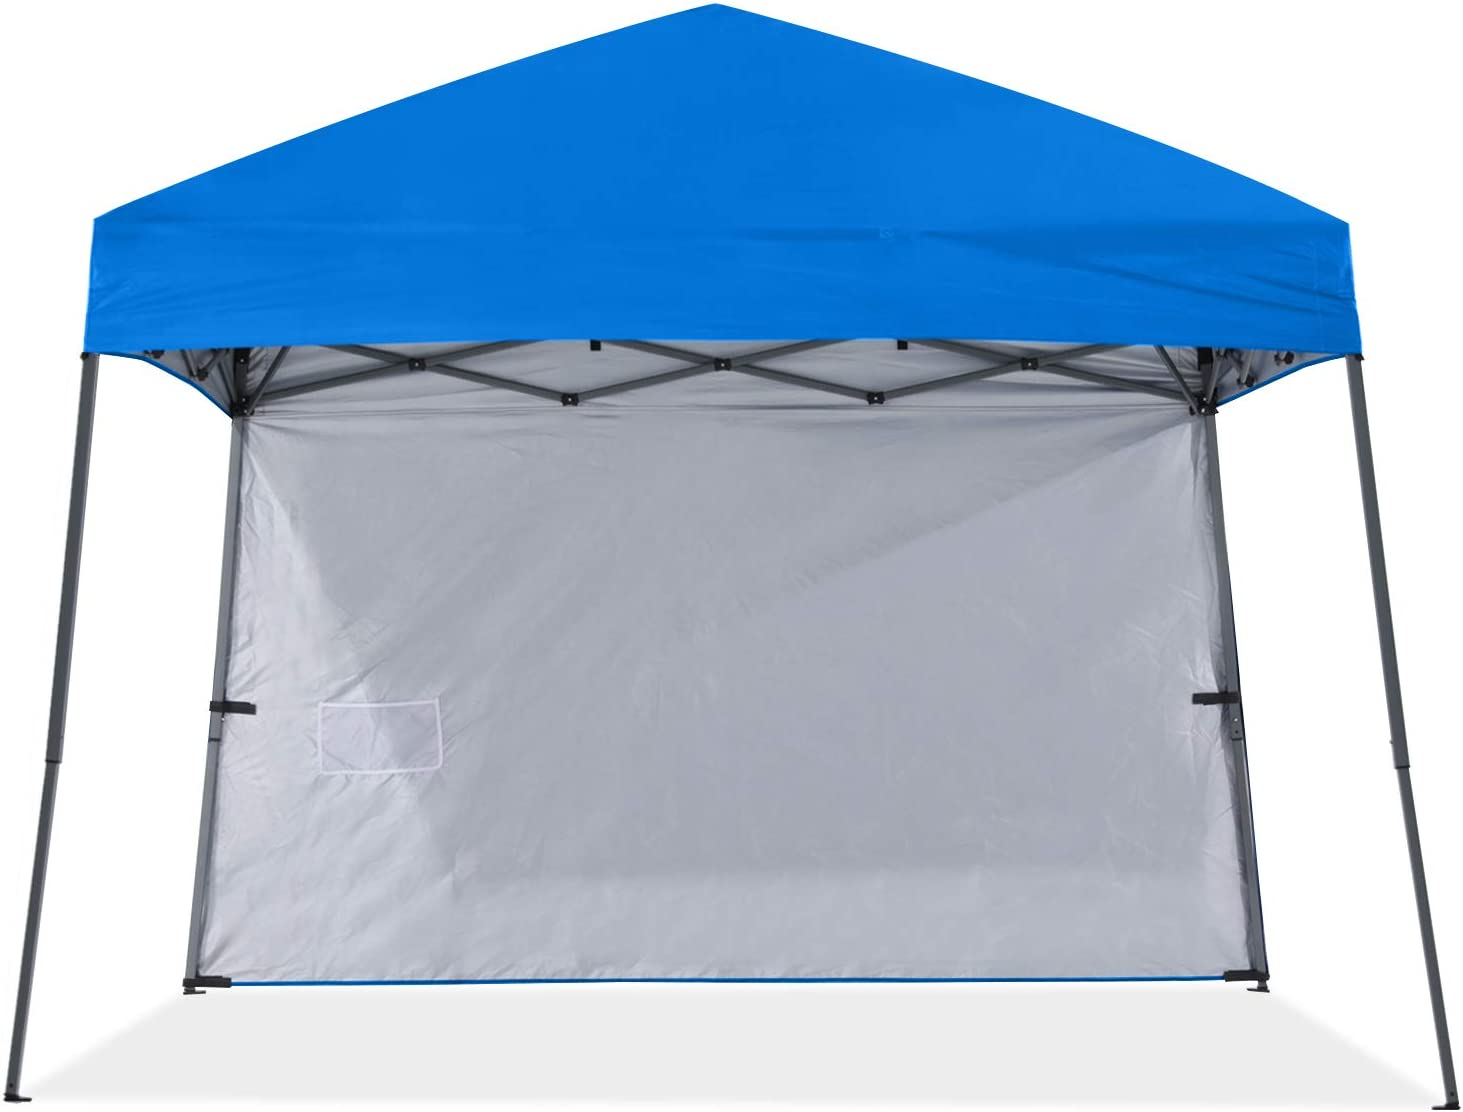 Popular overseas ABCCANOPY Stable Rapid rise Pop up Outdoor Canopy Bon Wall with Tent 1 Sun